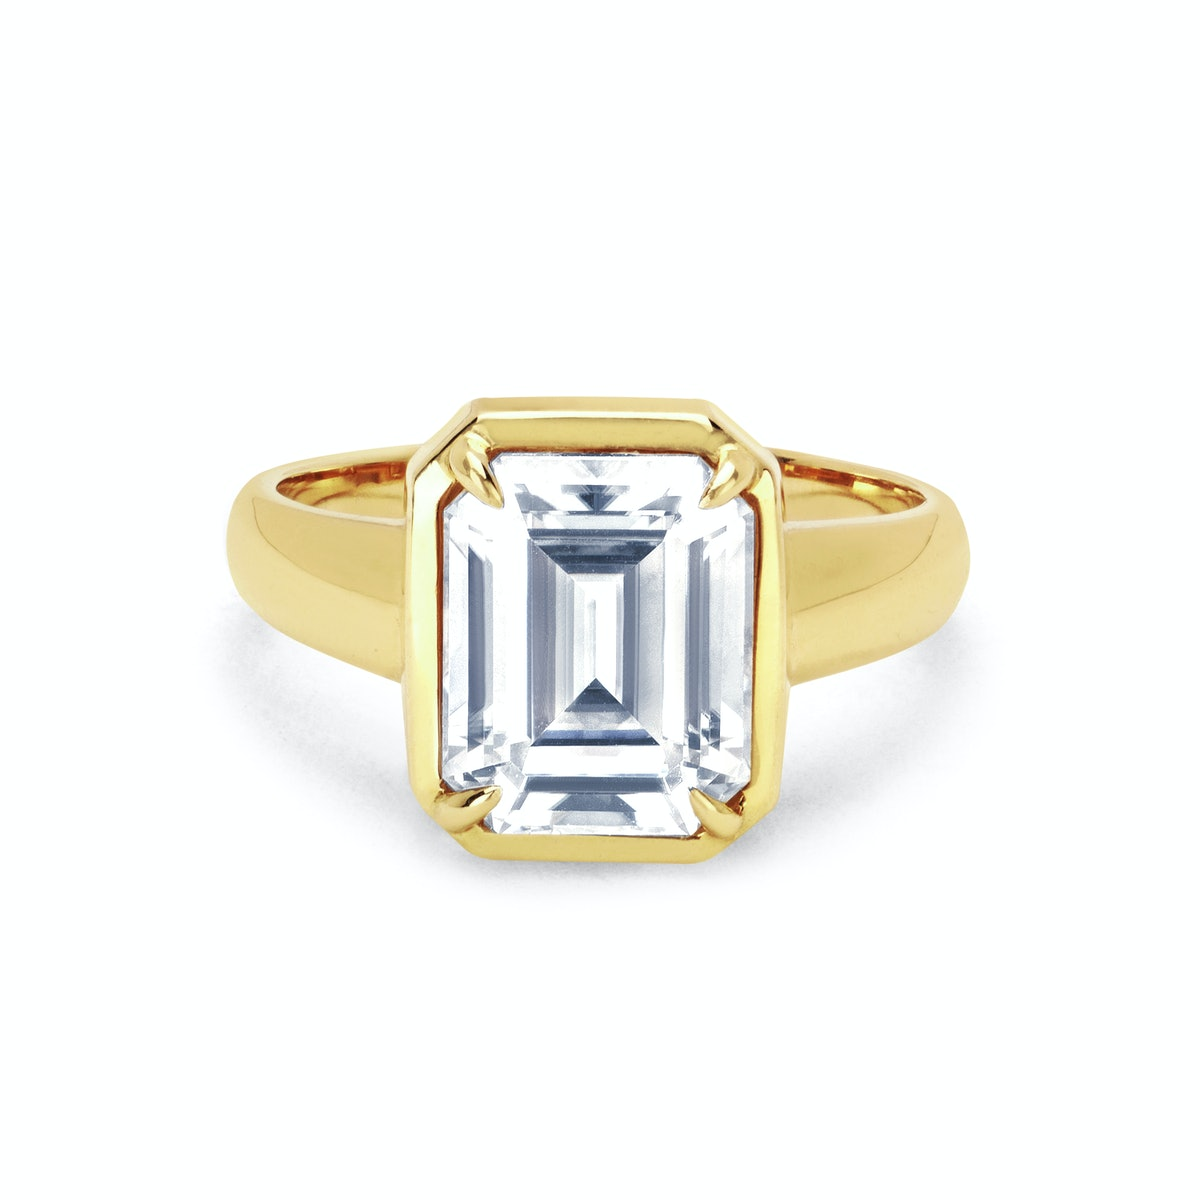 Emerald Cut Diamond Solitaire Setting with Tapered Cloud Fit Band from Logan Hollowell.